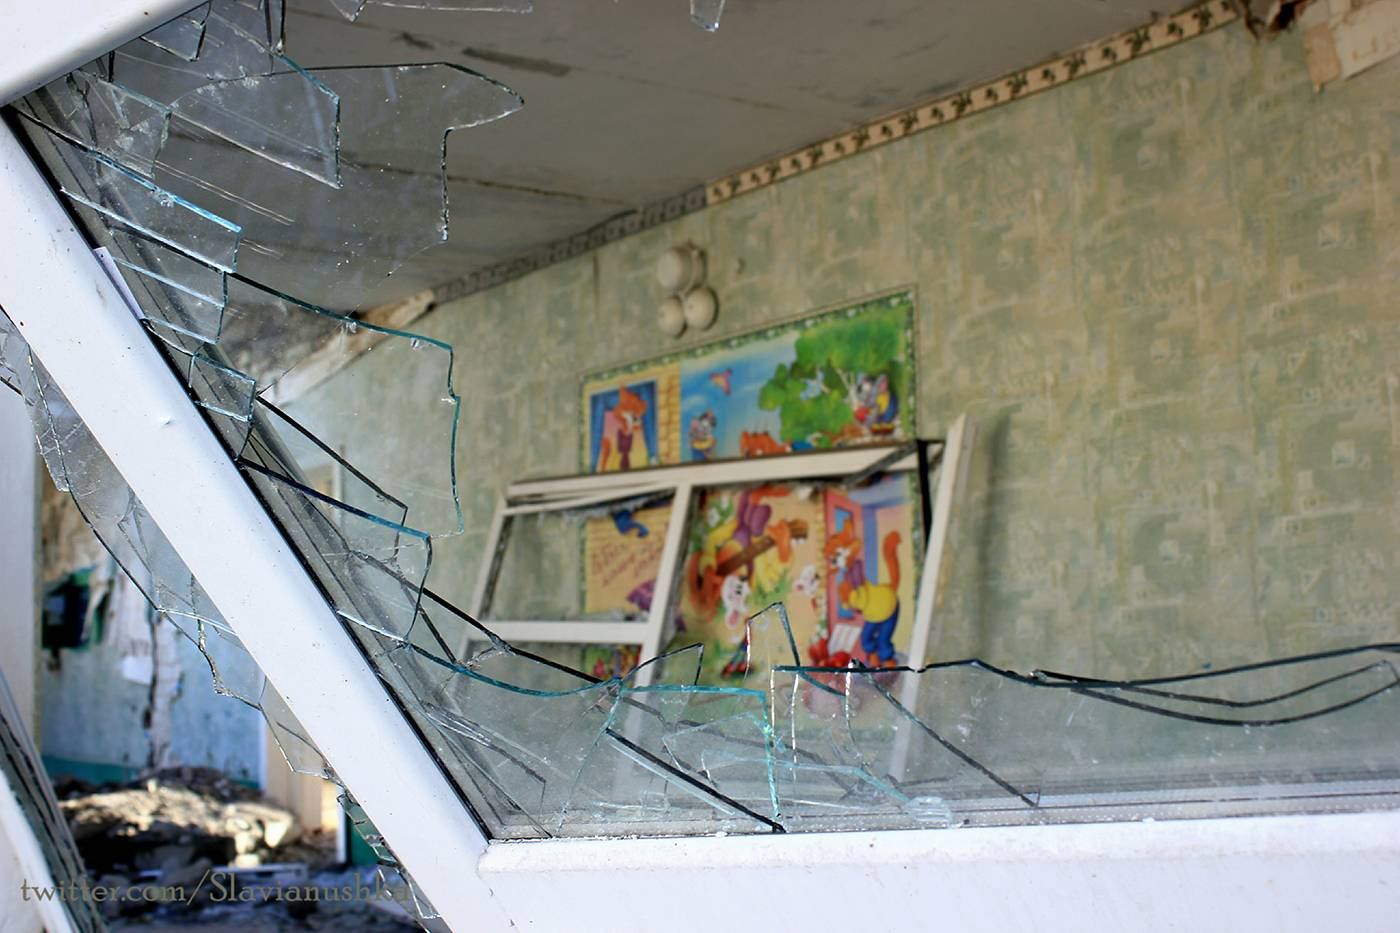 The school had none of it's windows left intact on the side facing towards Debaltsevo. Evidently, it had not been random fire—we could see that all the strikes on the school were direct hits